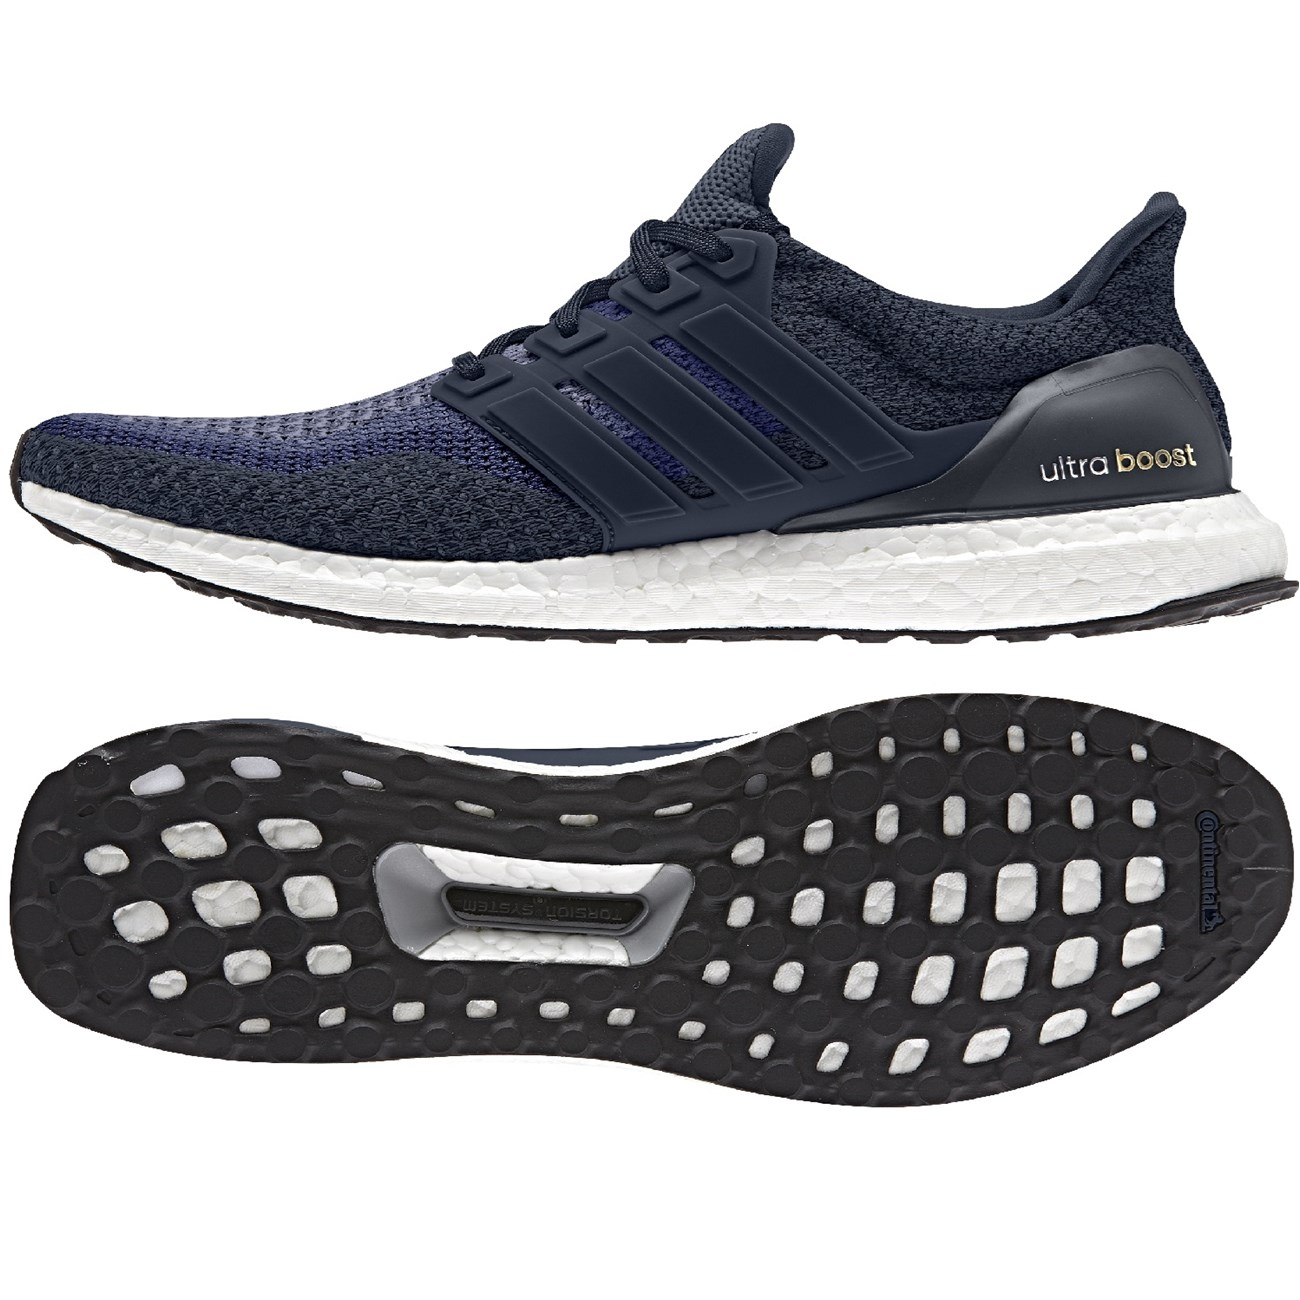 detailed look 8704c 4a883 adidas ultra boost black intersport shoes